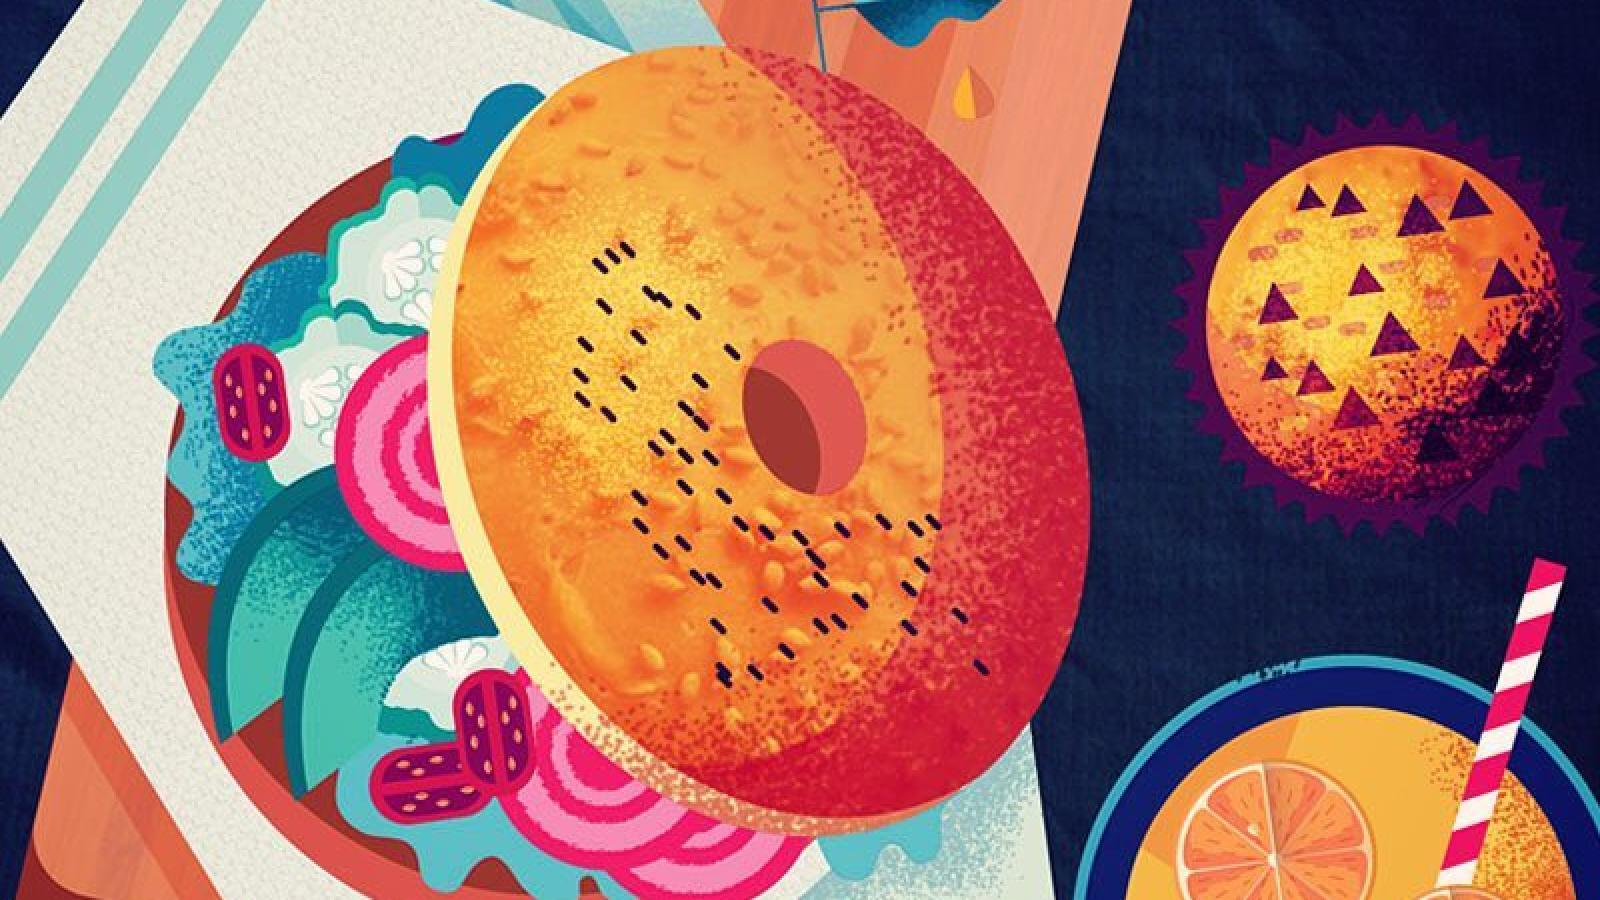 Stylish Illustrations by Maite Franchi